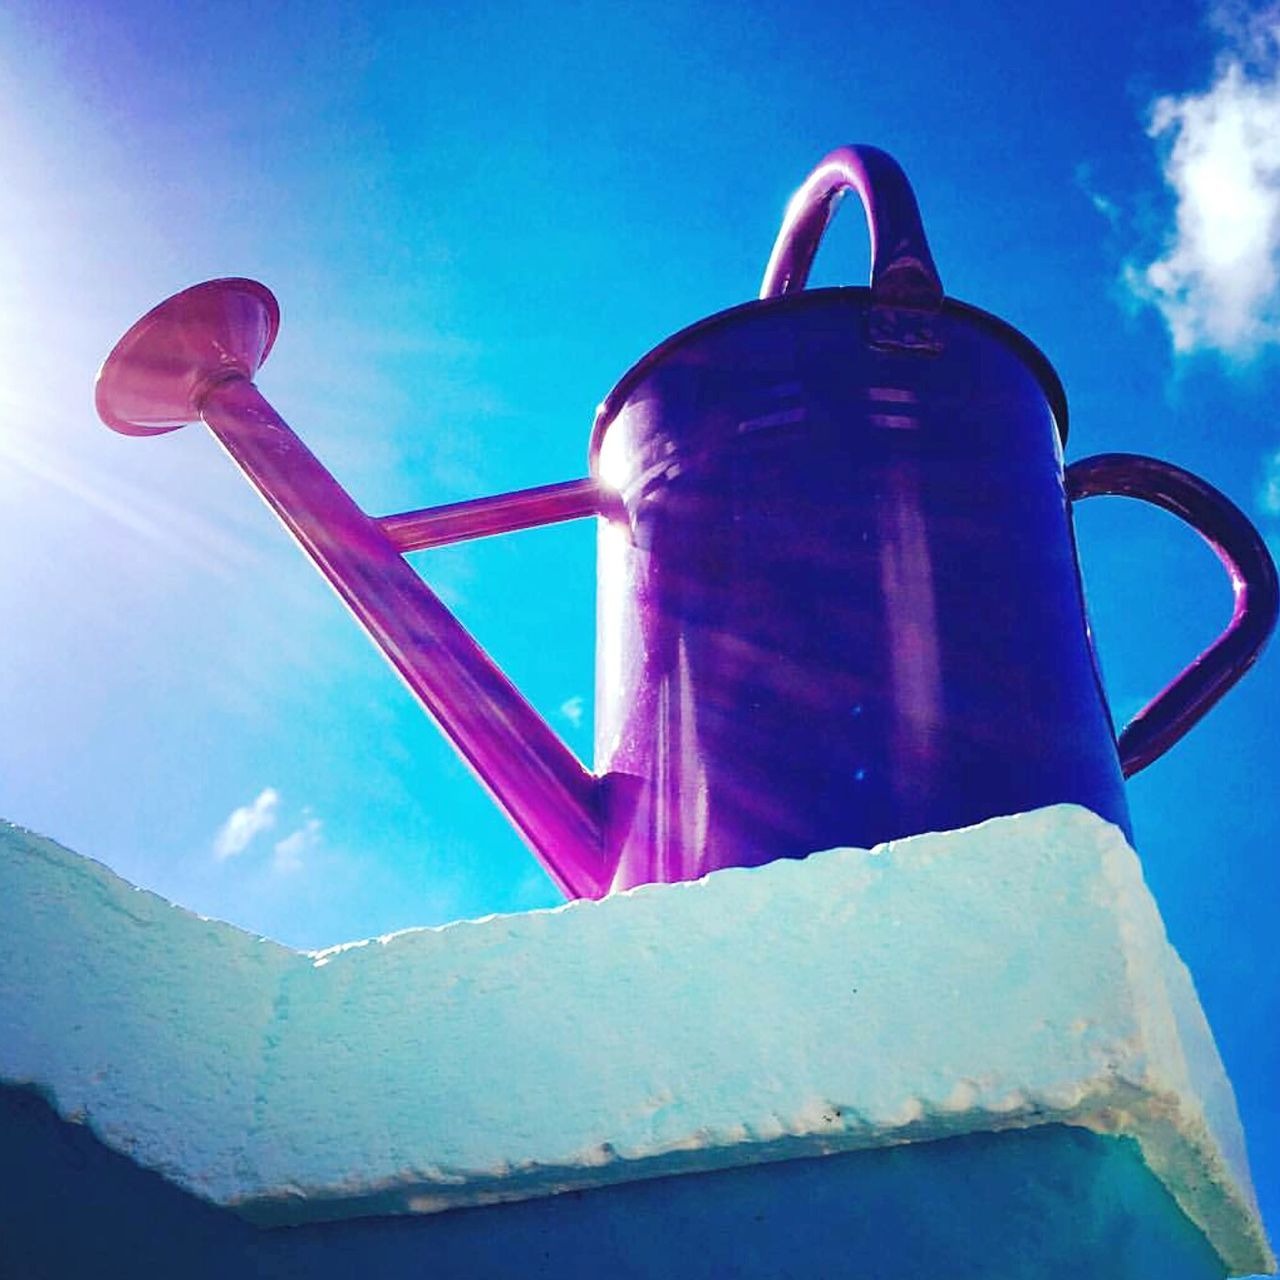 drink, no people, blue, food and drink, refreshment, water, sky, close-up, outdoors, day